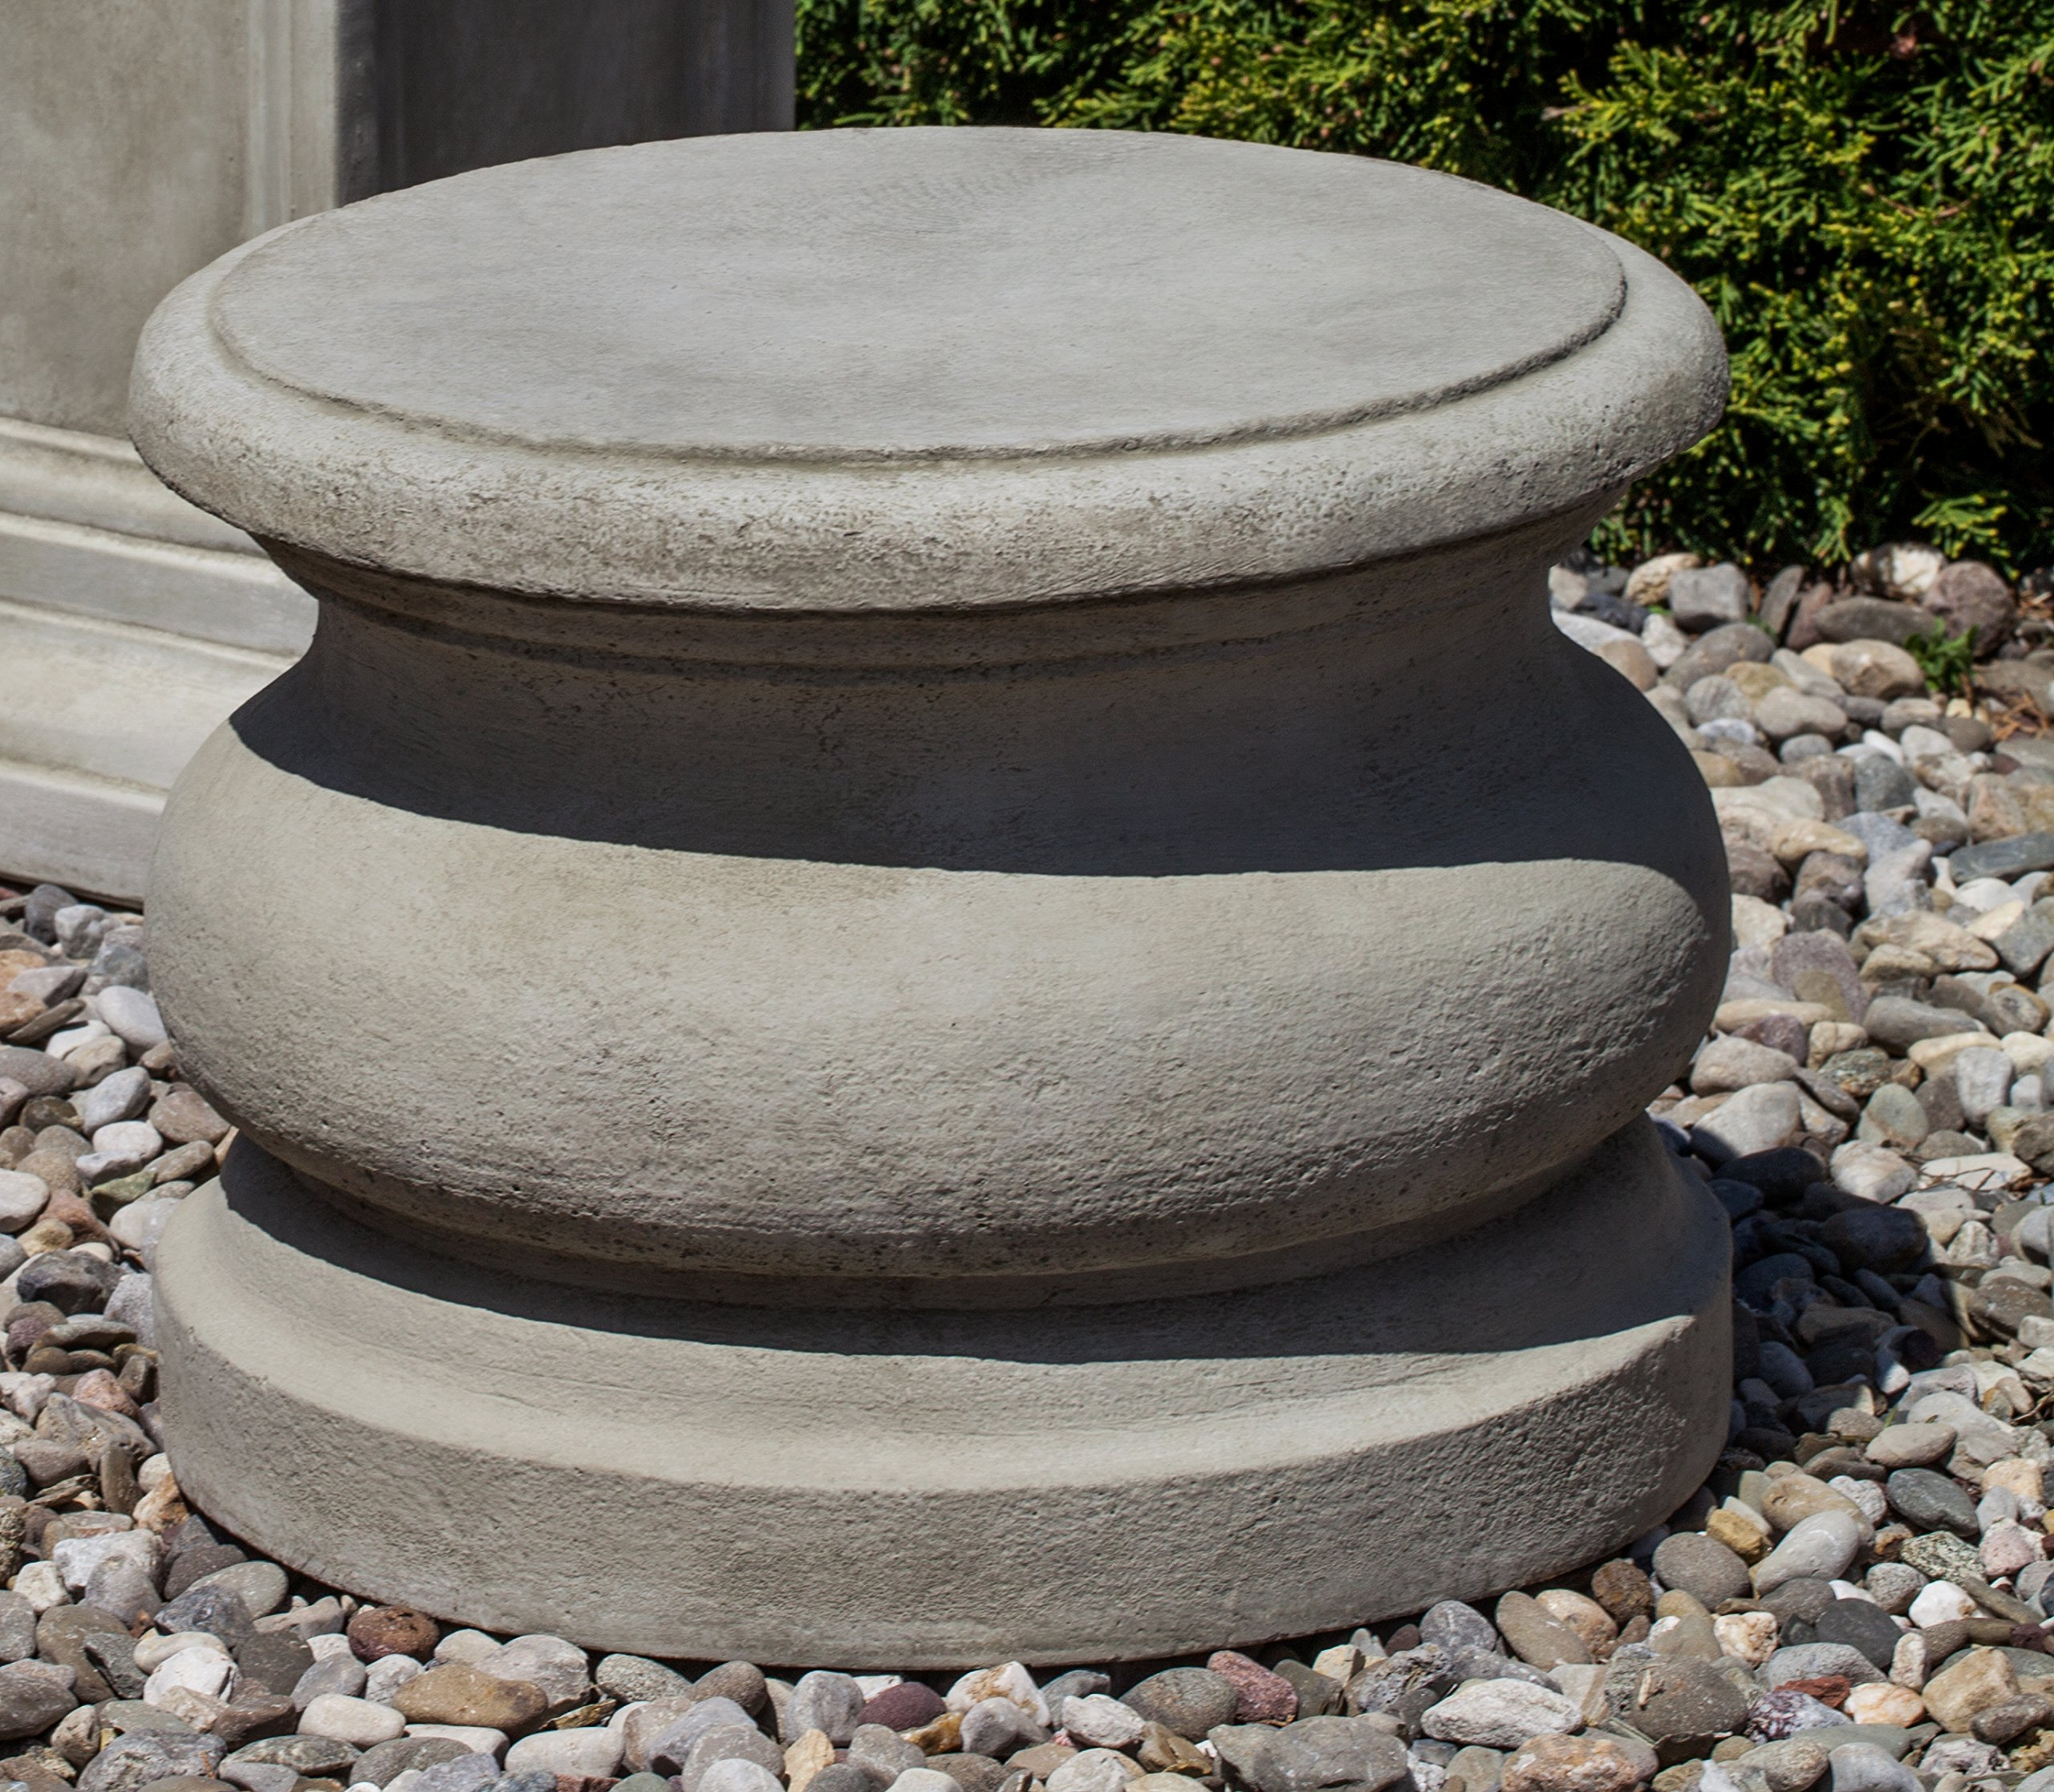 Campania International PD-78-GS Round Plain Pedestal, Low, Grey Stone Finish by Campania International